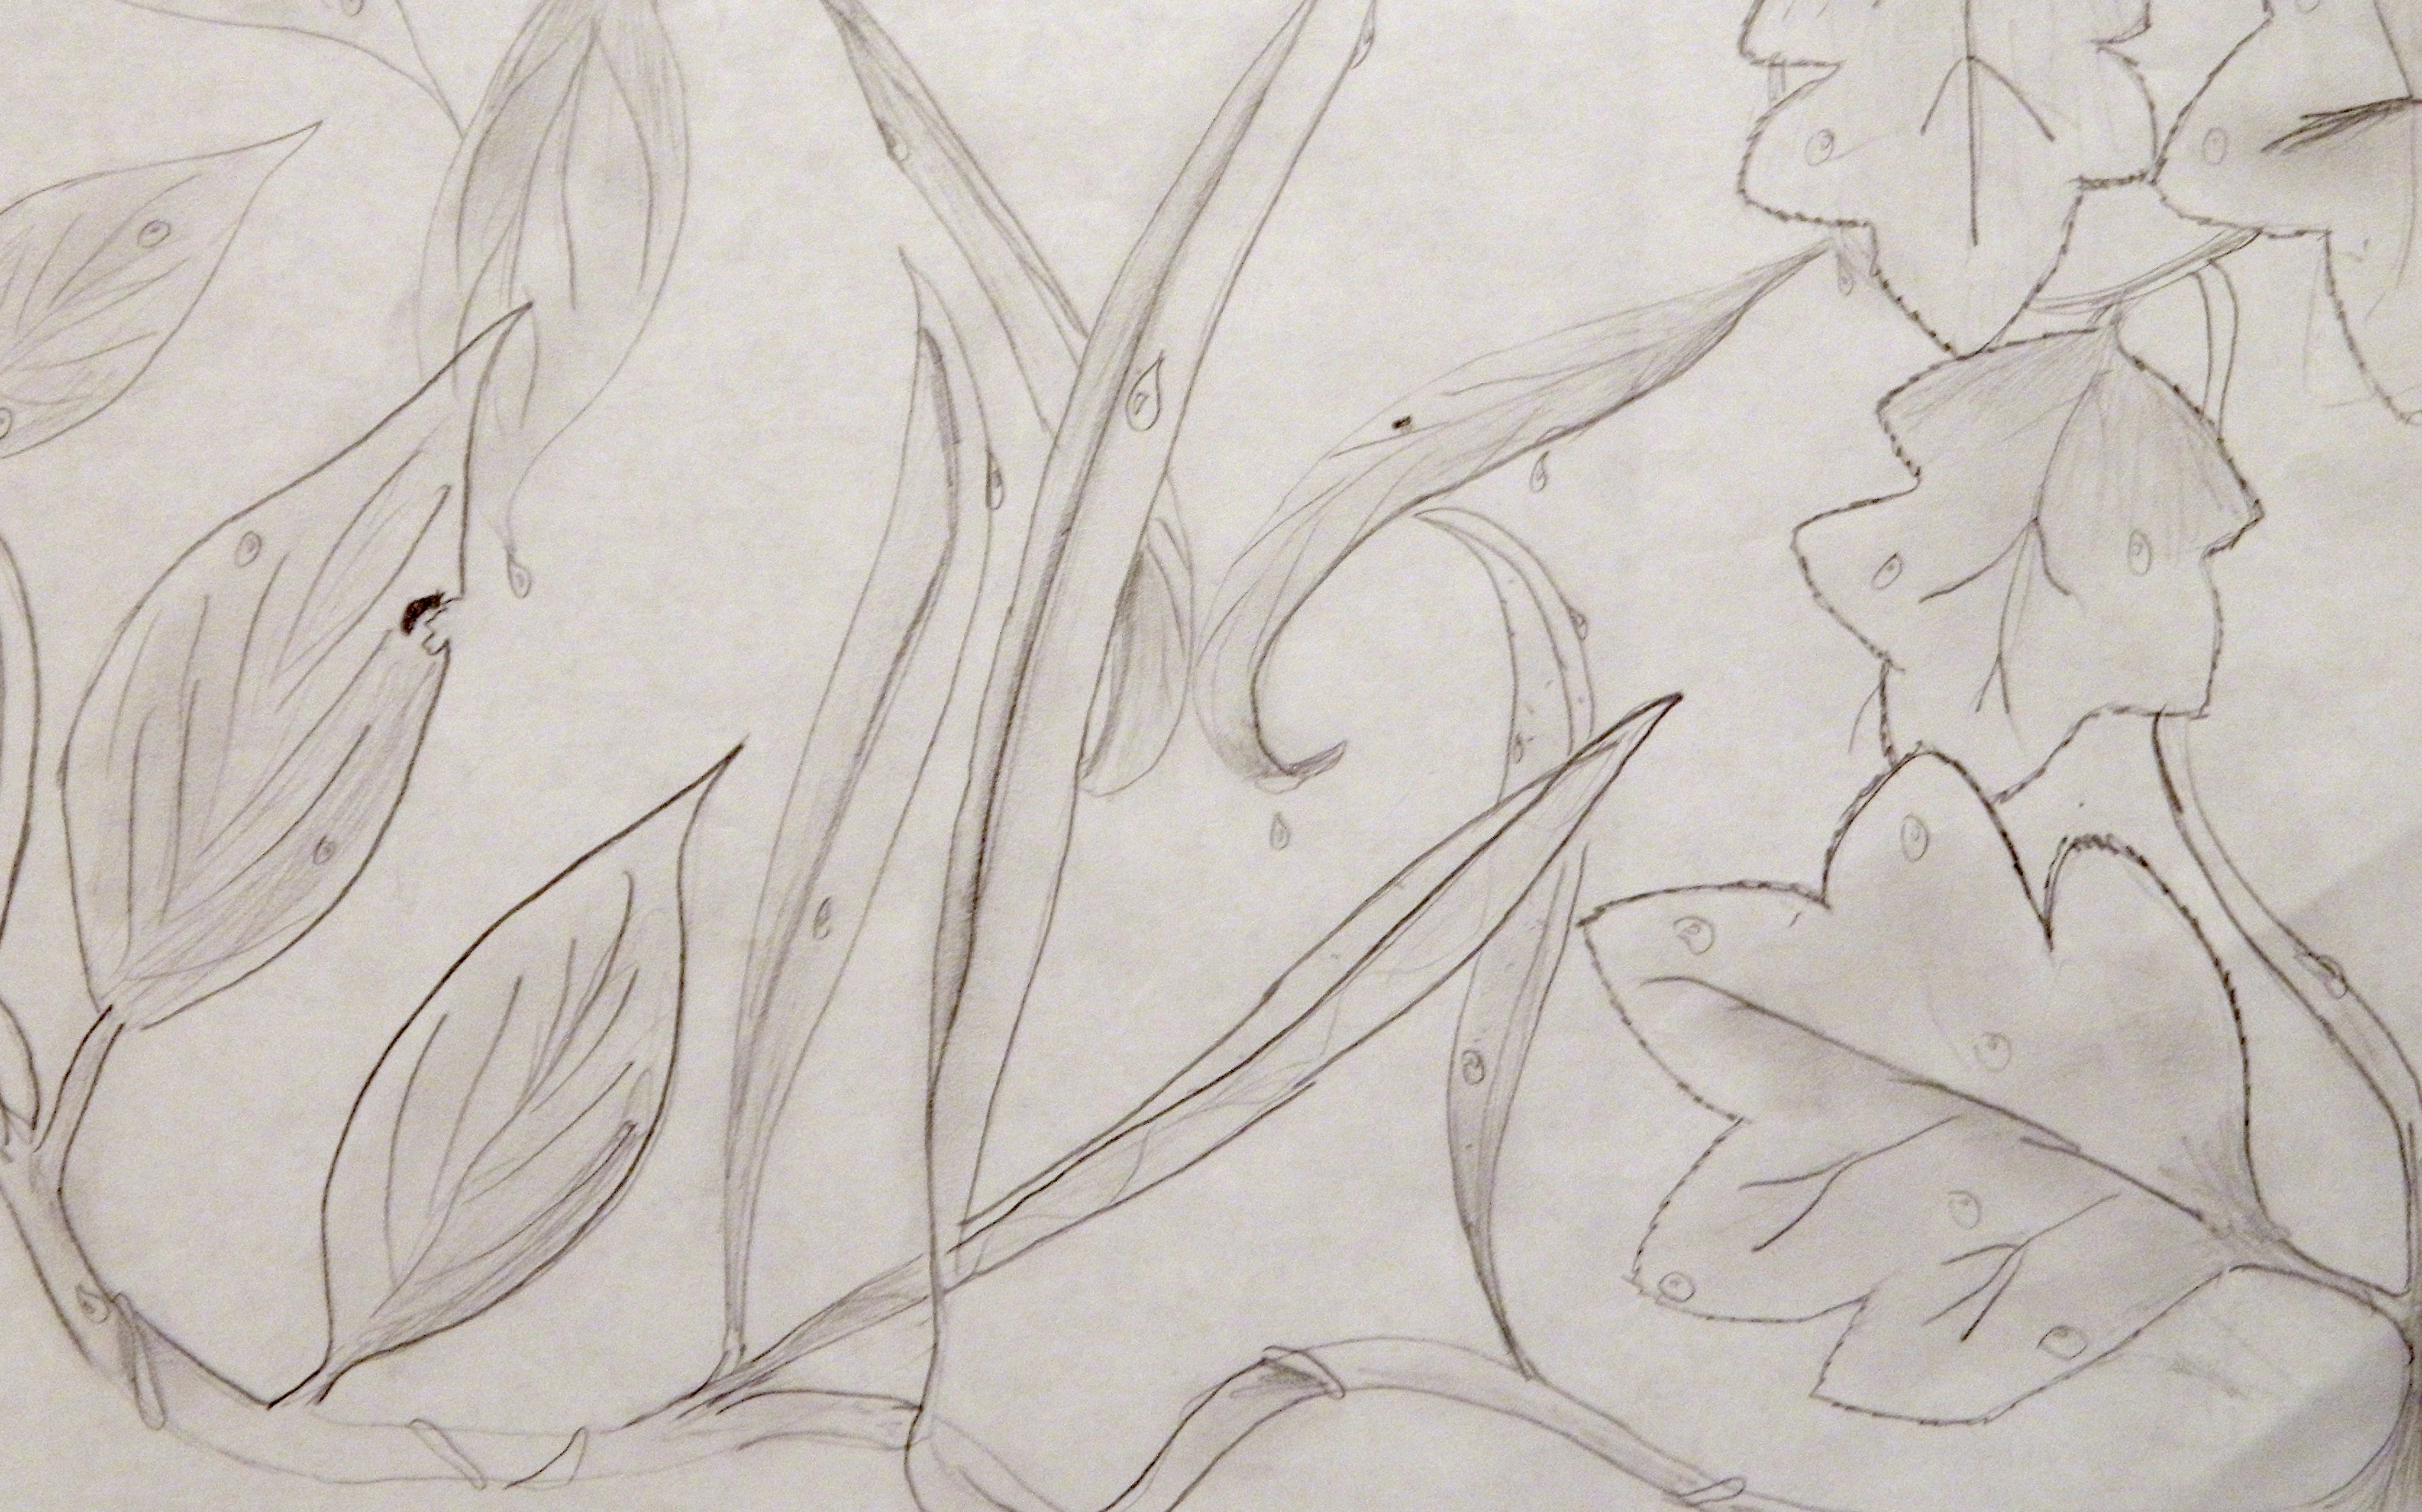 Contour Line Drawing In Art : Cross contour line projects u drawing grand center arts academy